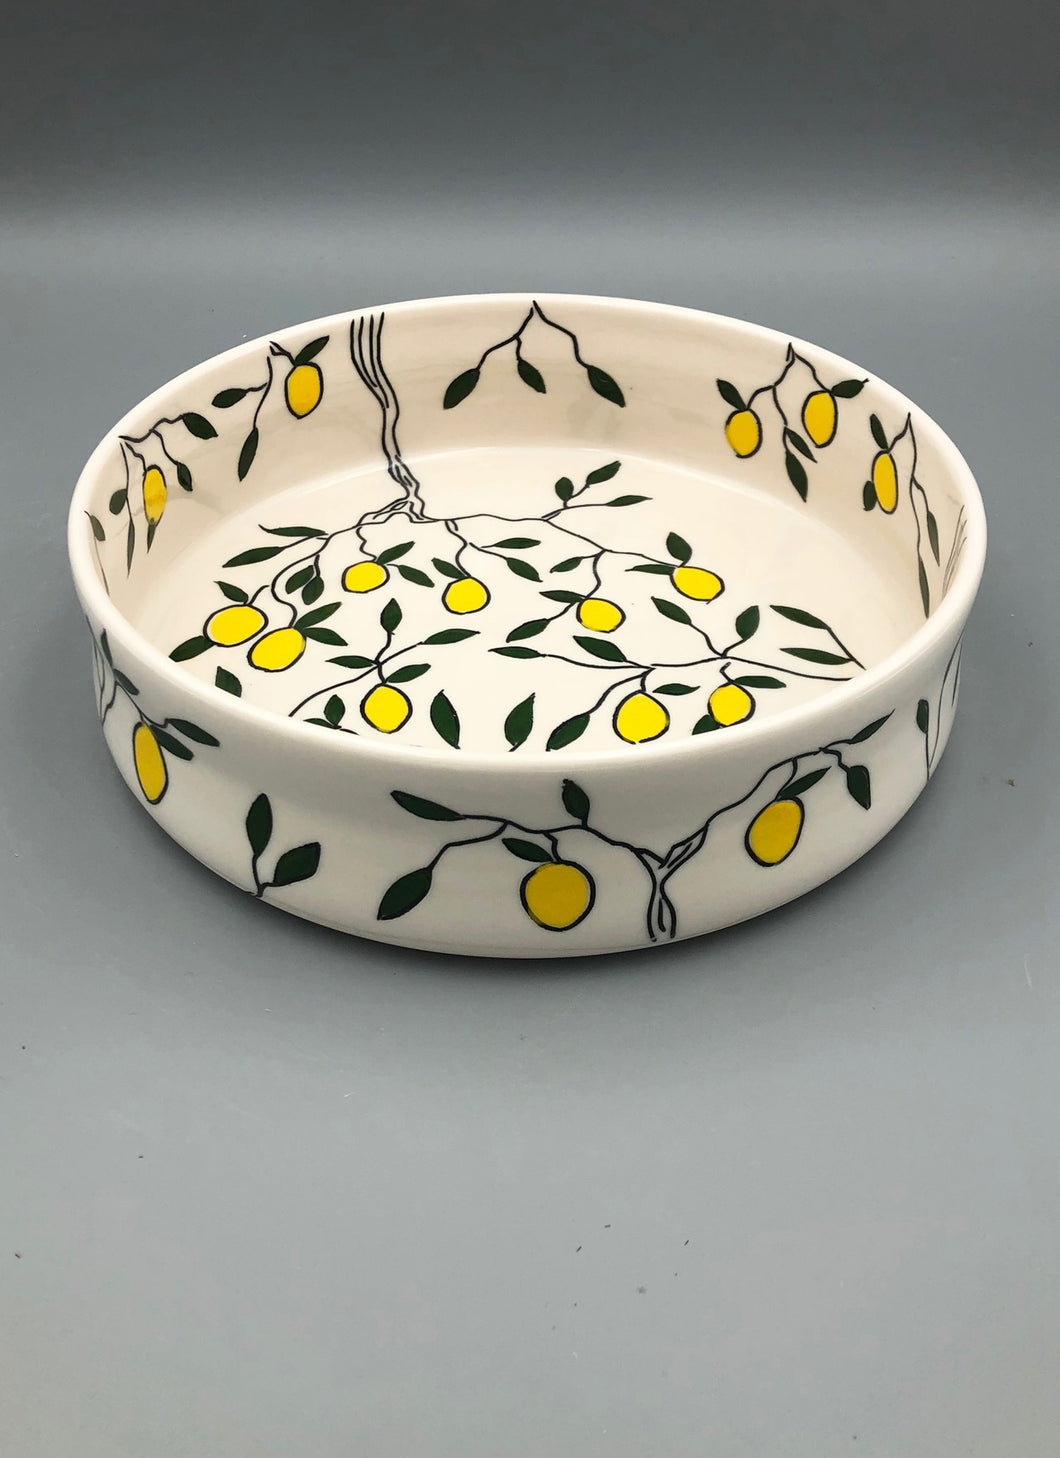 Serving dish (medium) - Lemon design on porcelain